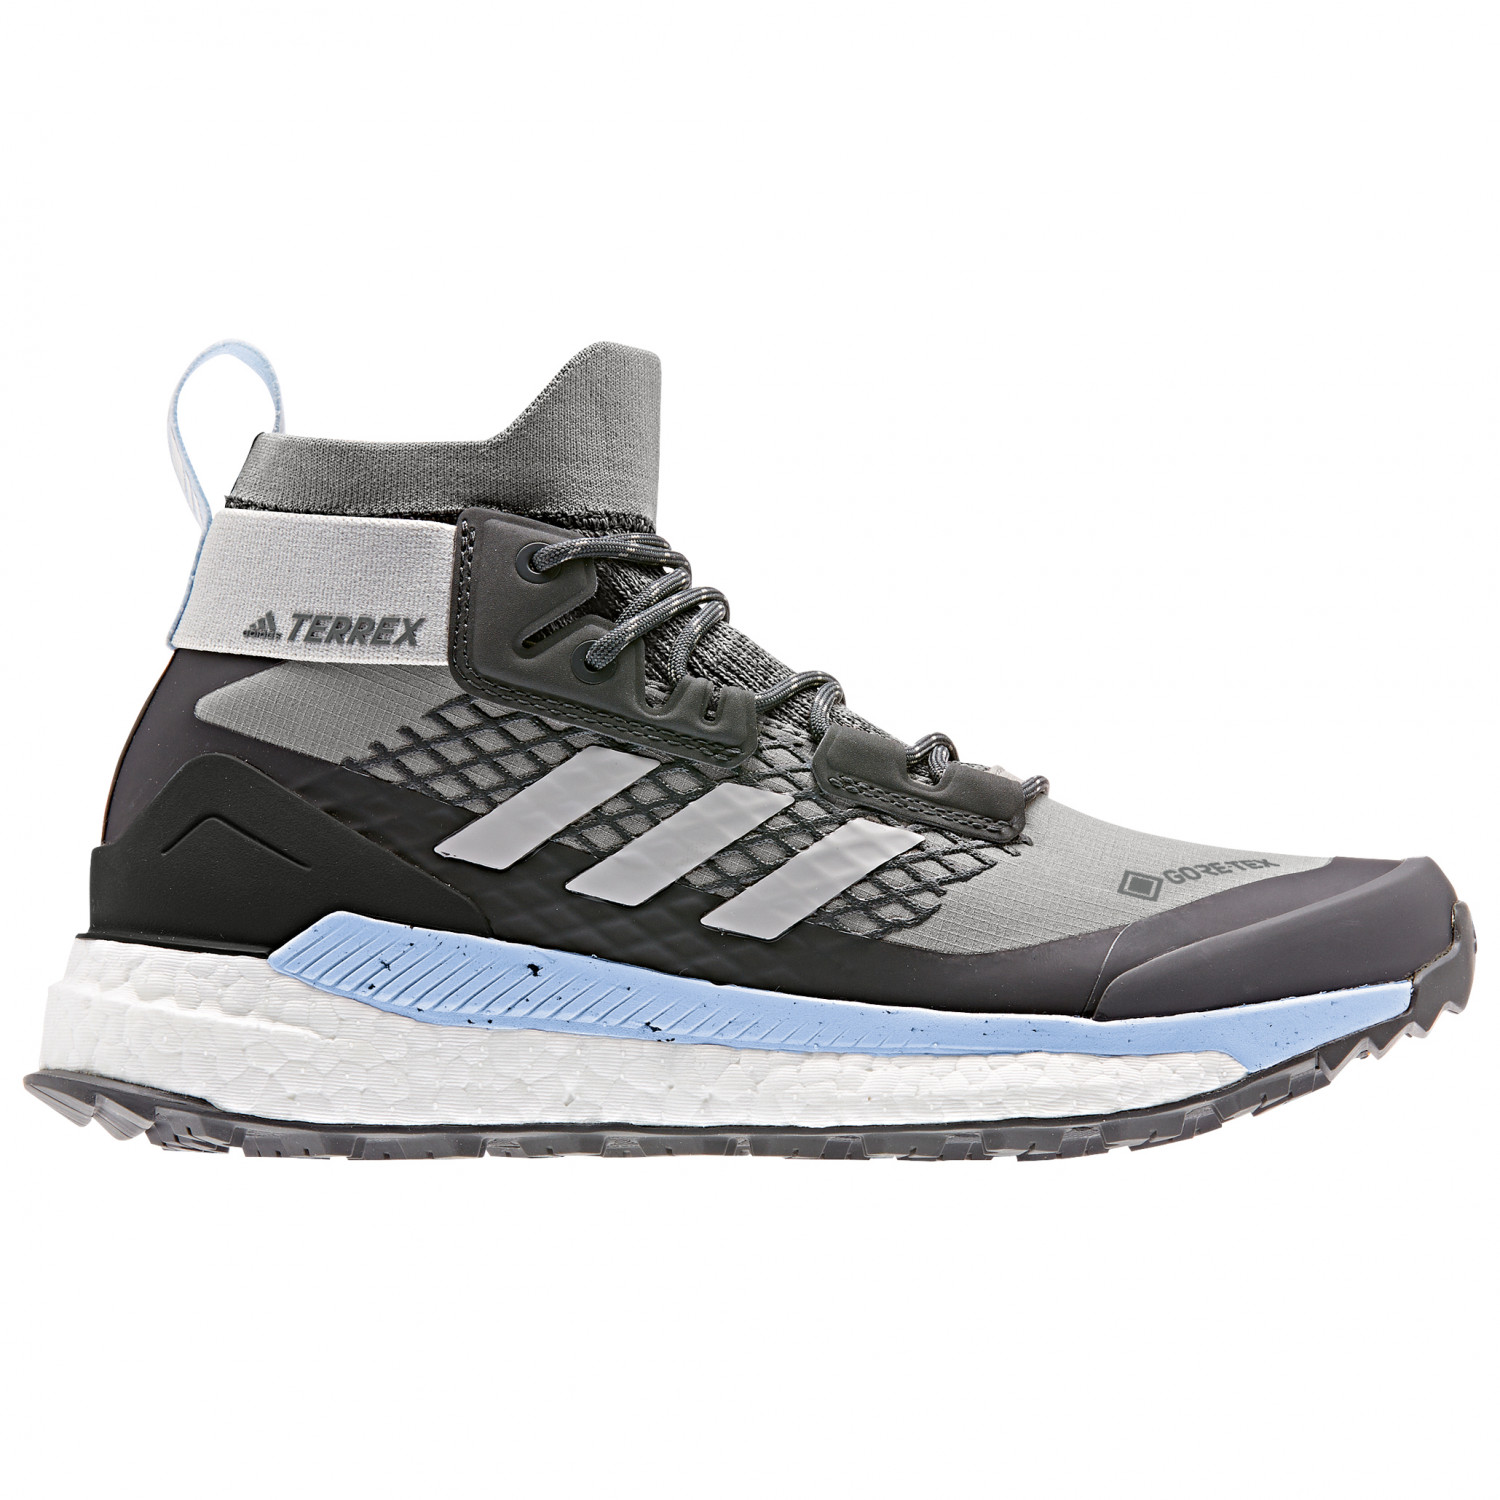 adidas - Women's Terrex Free Hiker GTX - Botas de trekking - Carbon / Grey  Four / Glow Blue | 3,5 (UK)